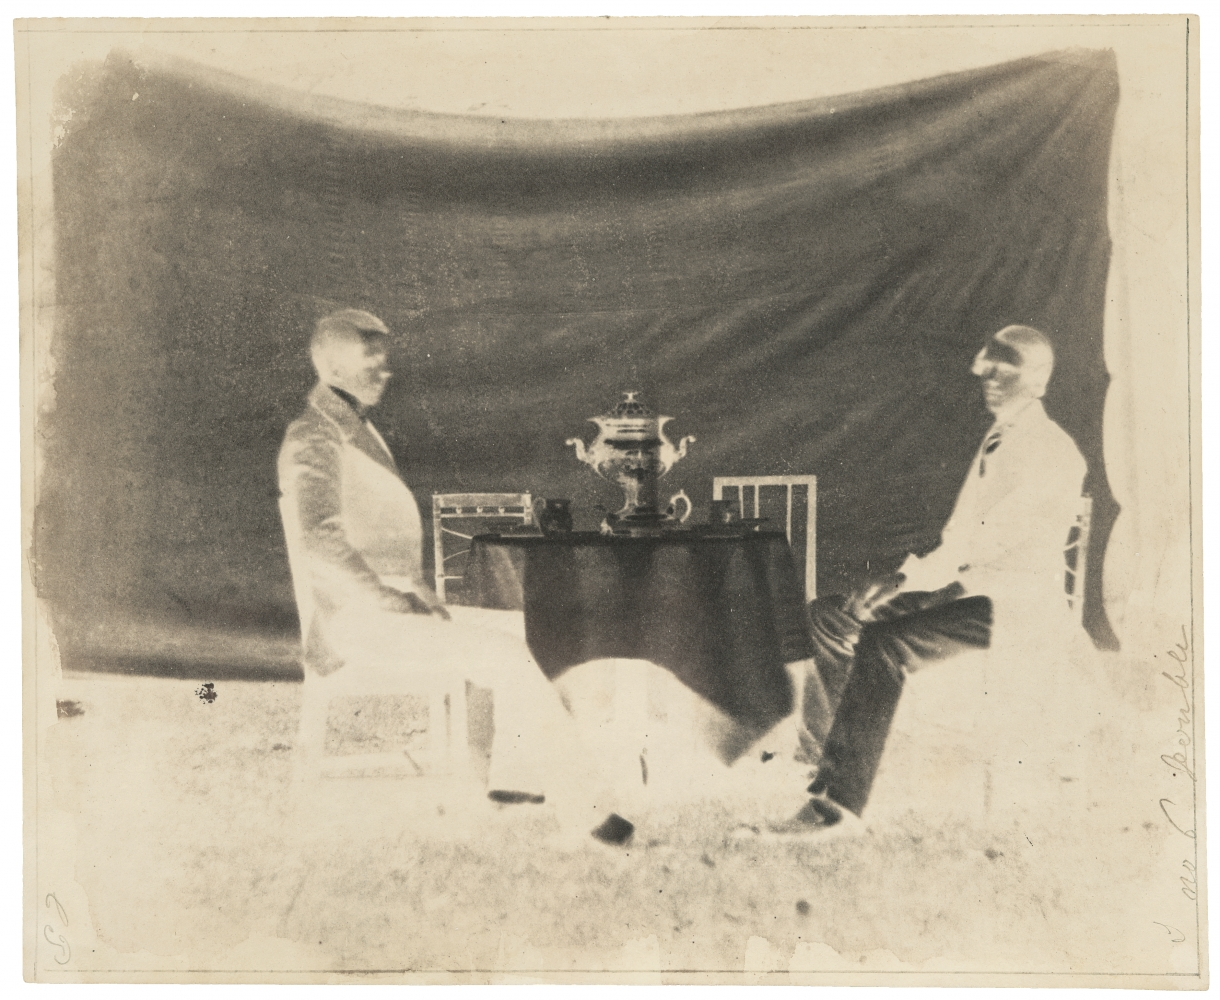 """William Henry Fox TALBOT (English, 1800-1877) Charles Porter and another man, circa 1843 Calotype negative 18.8 x 22.9 cm Ruled at edges, inscribed """"C.P."""" and """"n. 6 Double"""" in pencil"""